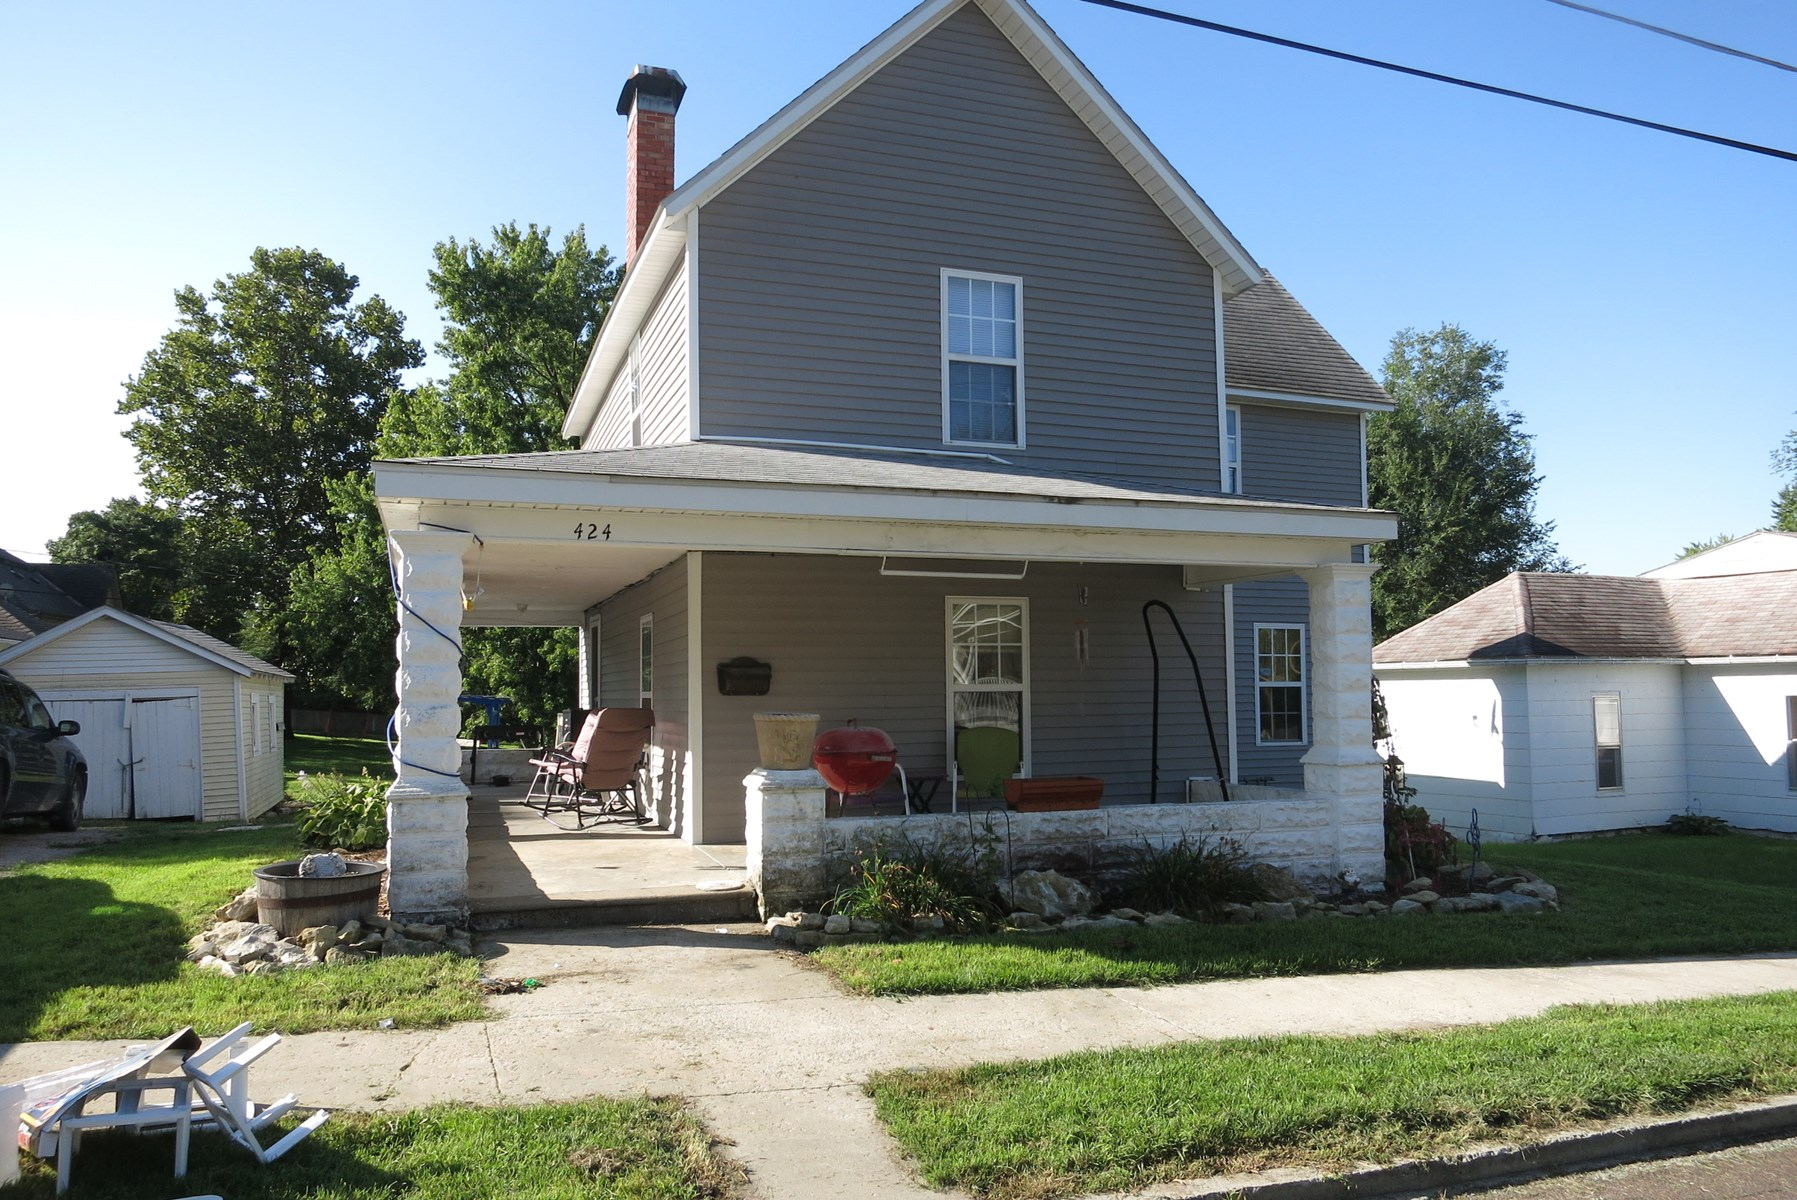 For Sale 4 Bedroom Home in Trenton MO